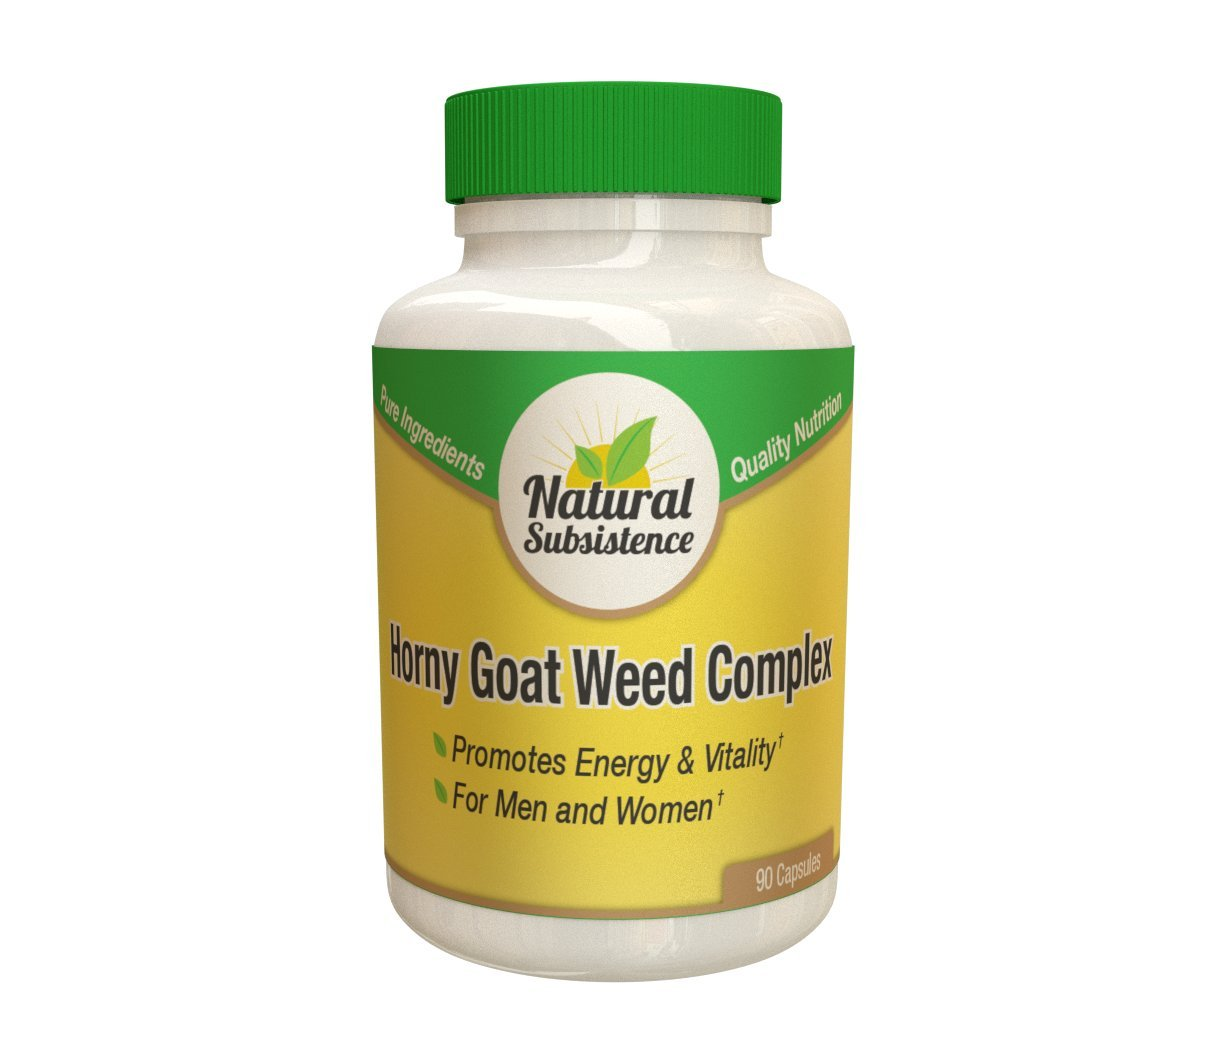 Horny Goat Weed Complex - 90 Capsules. Clinically proven ingredients for up to 600% more effectiveness (1)